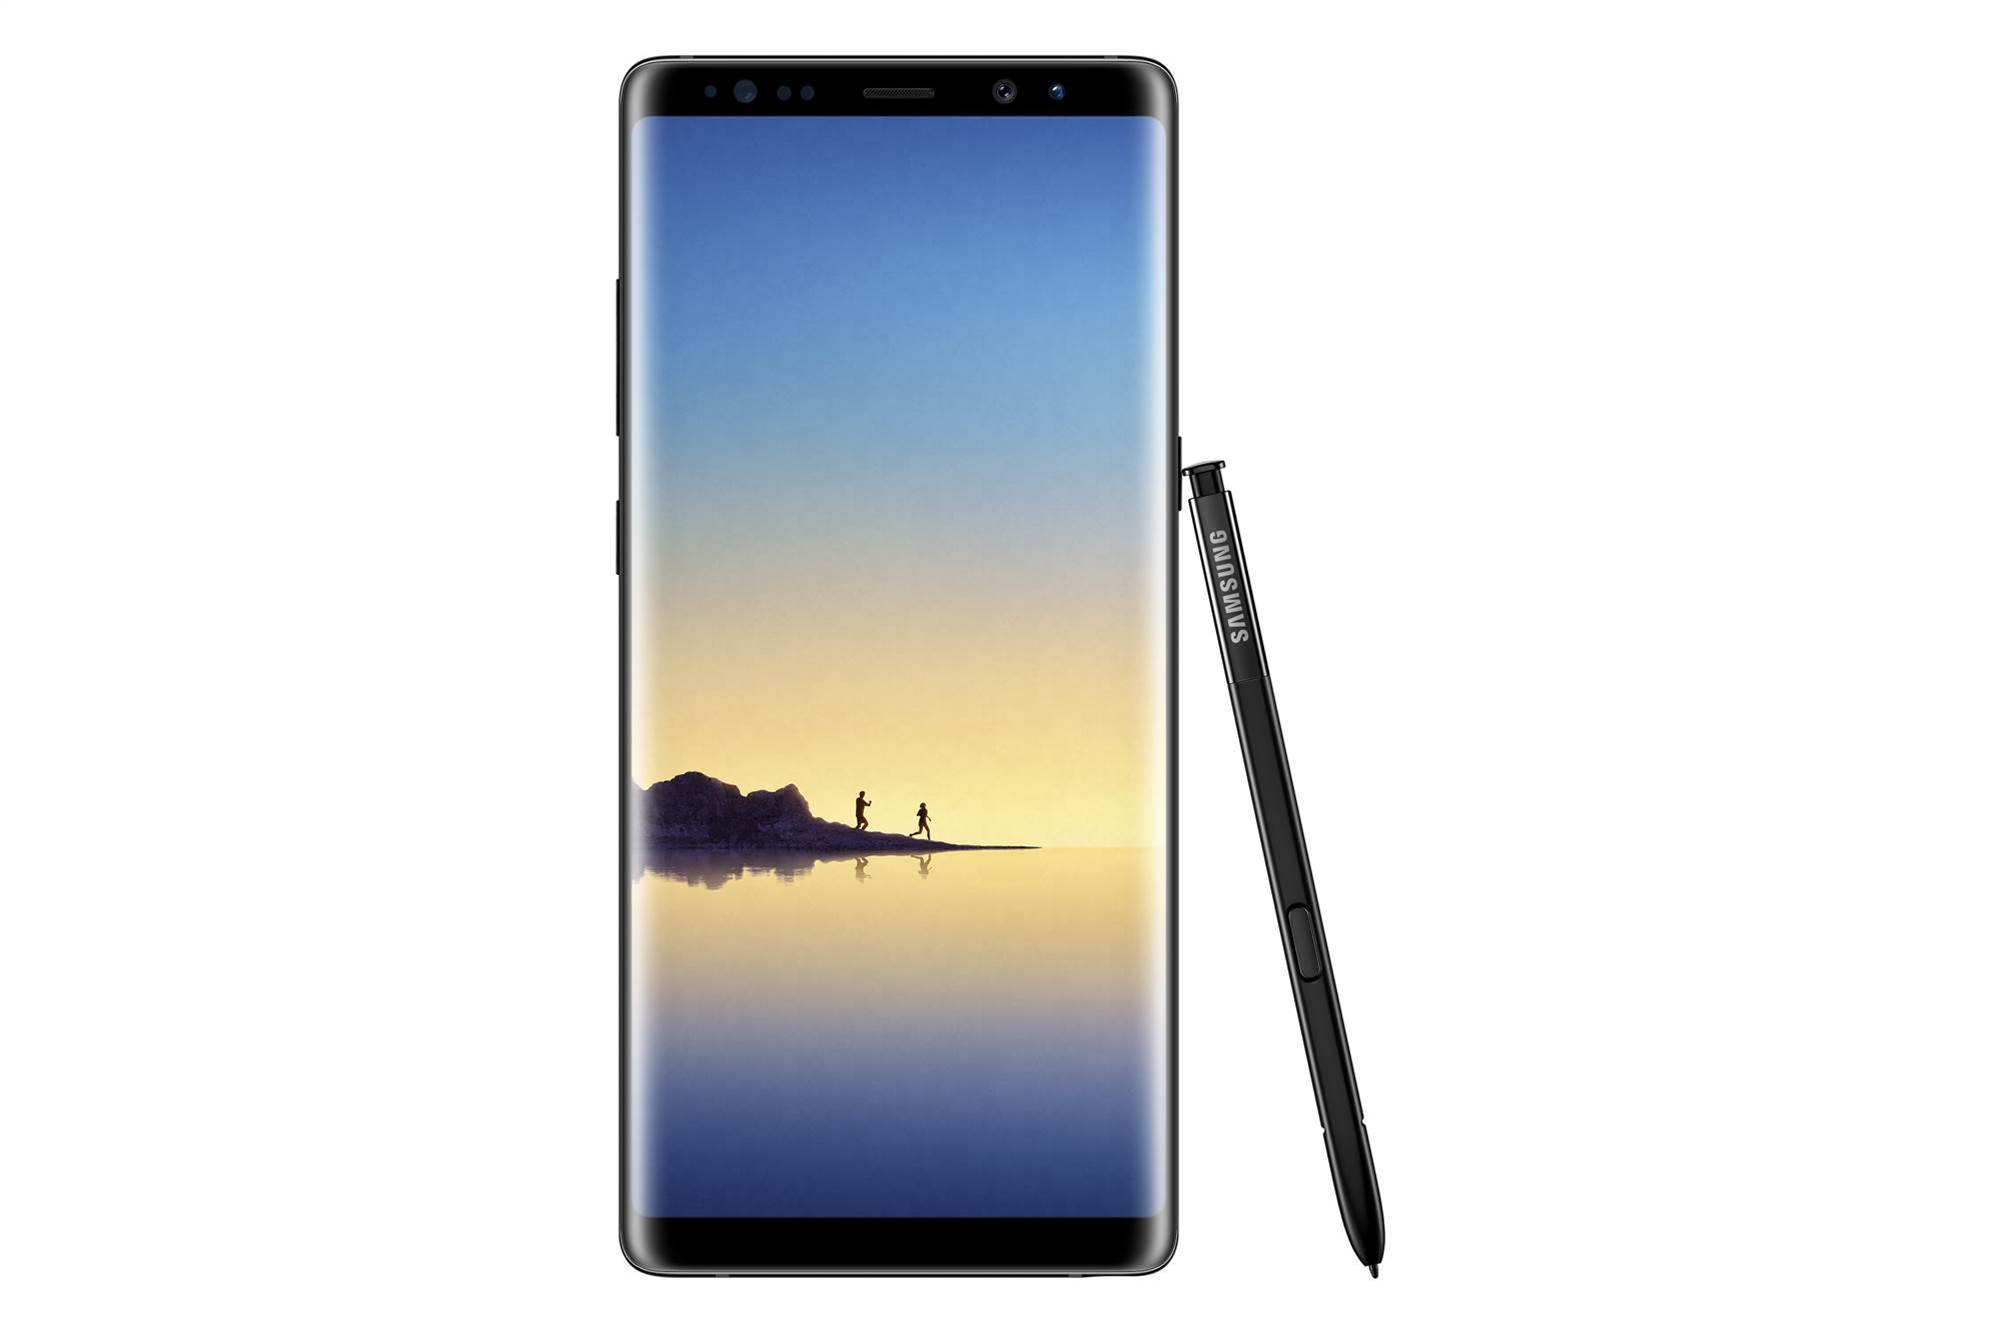 Samsung seeks to bury fiery past with Galaxy Note 8